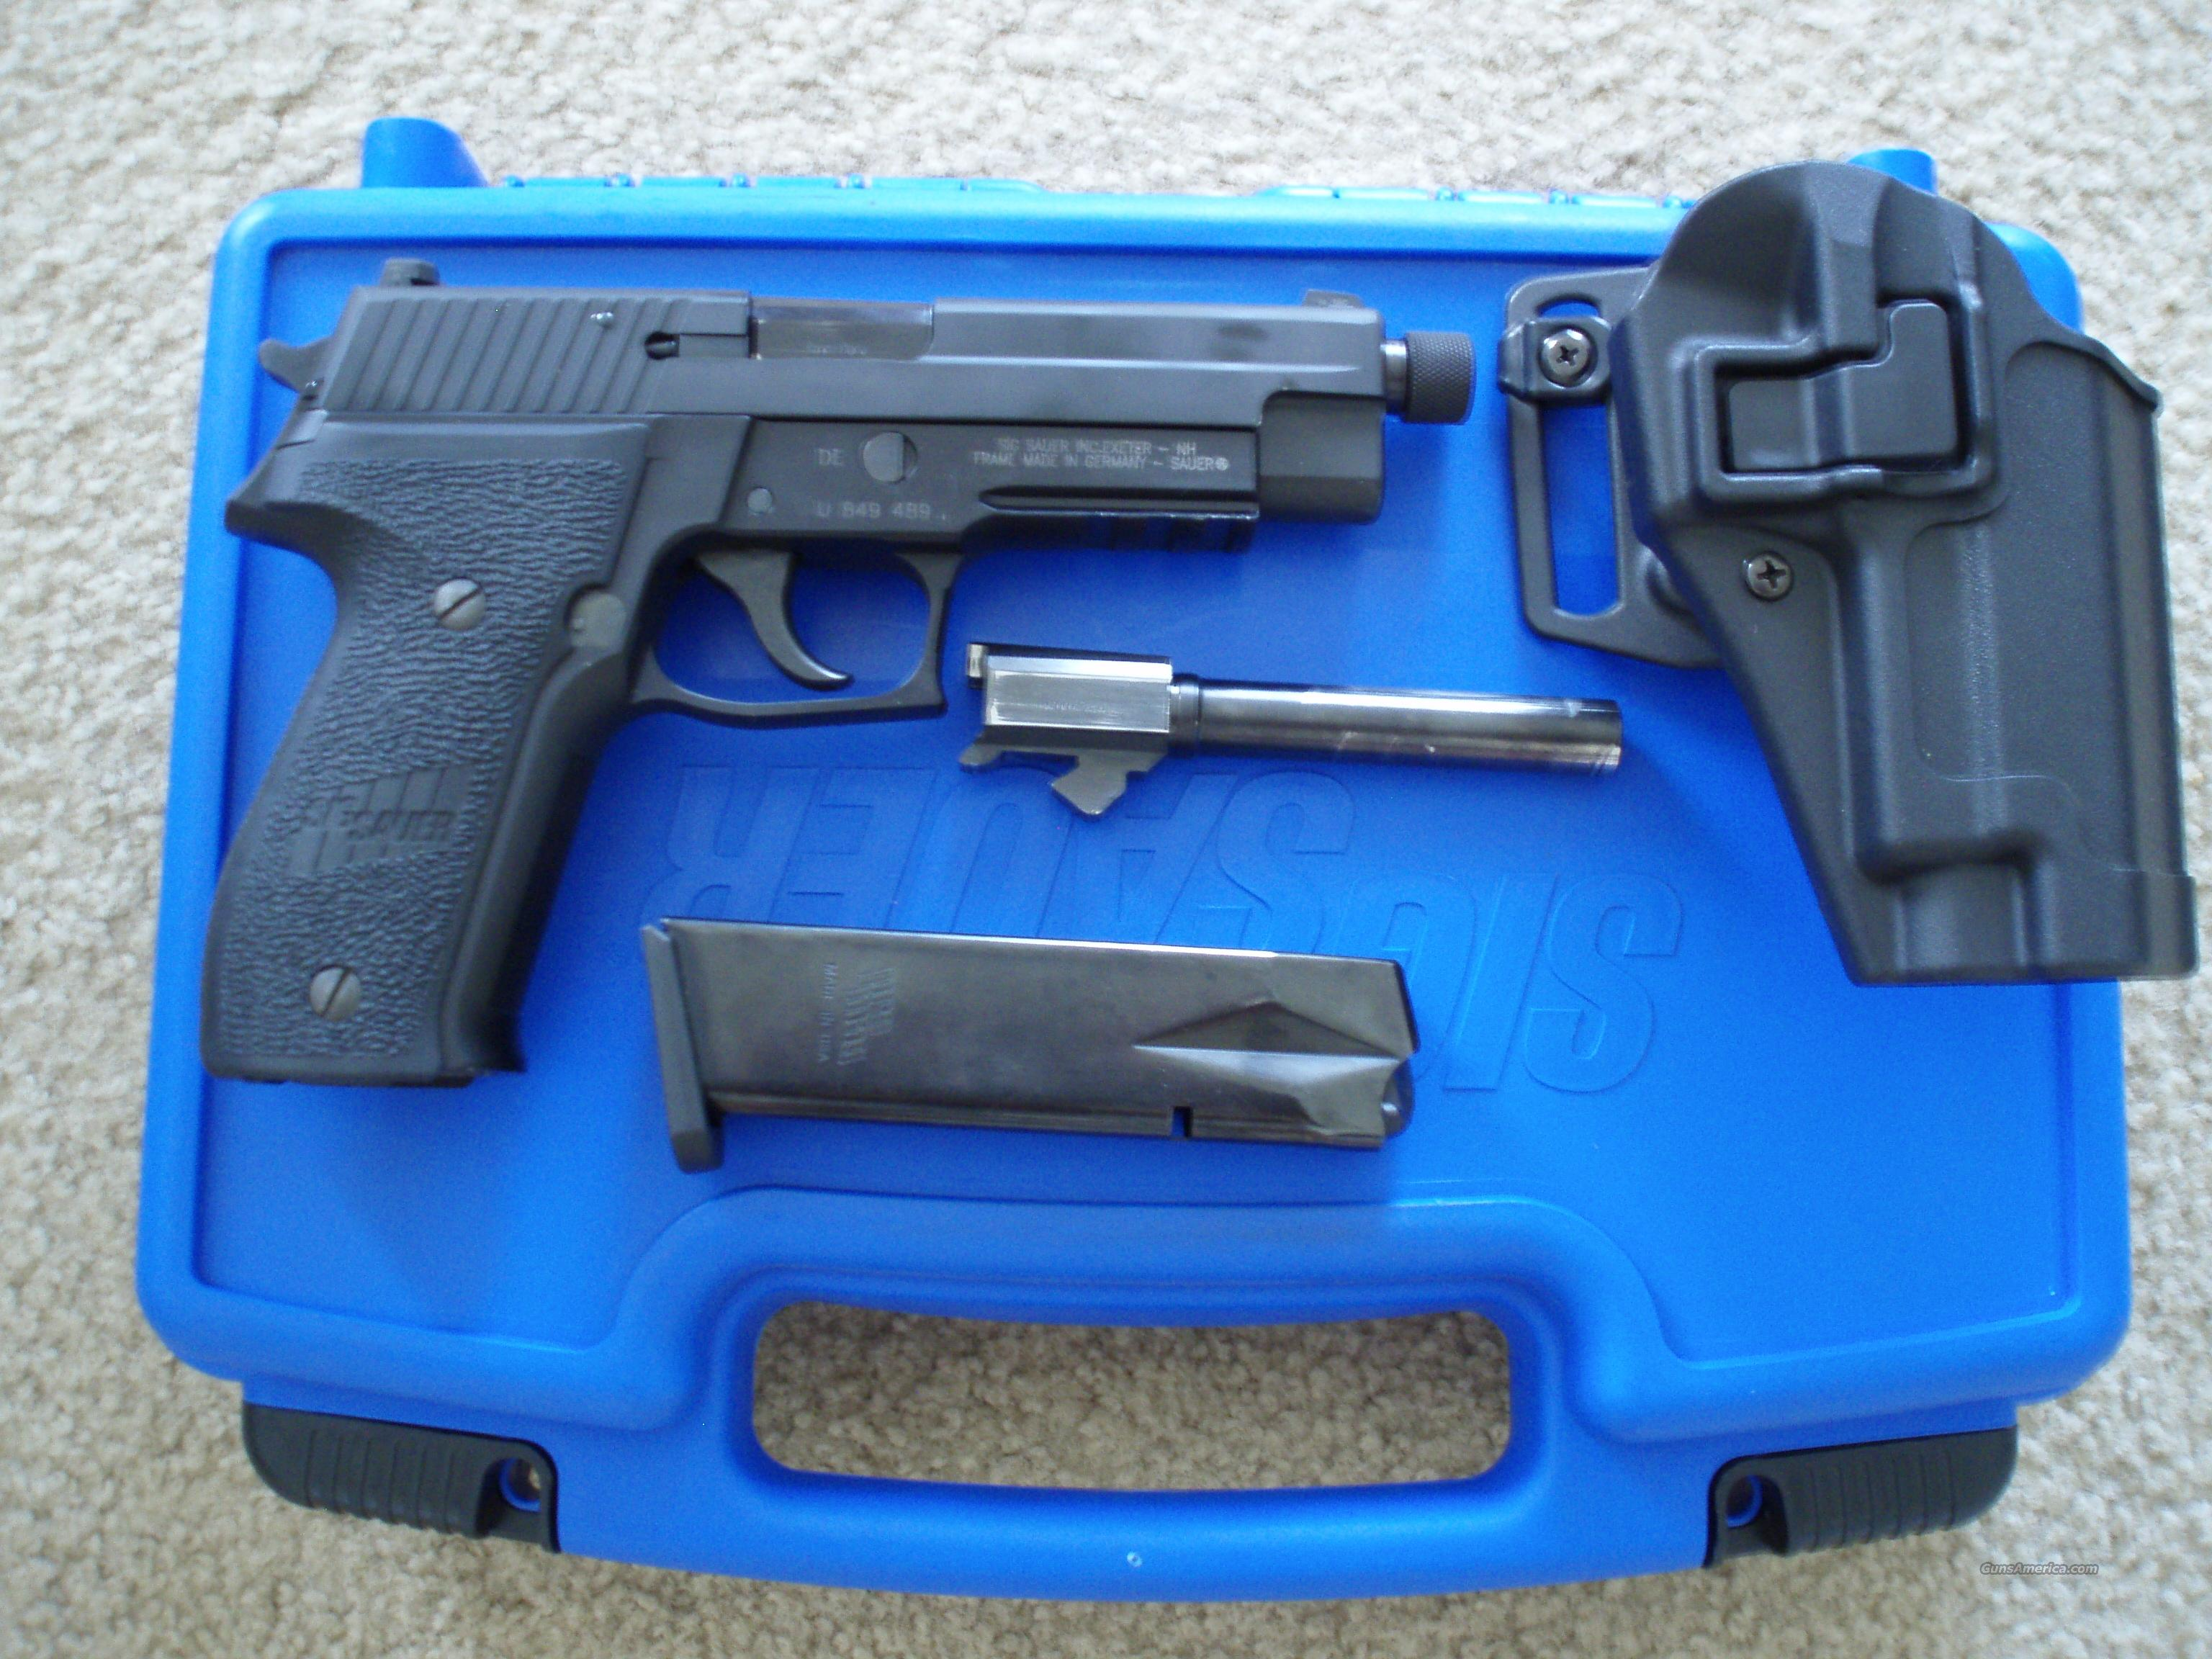 Sig 226 9mm night sights threaded barrel  Guns > Pistols > Sig - Sauer/Sigarms Pistols > P226